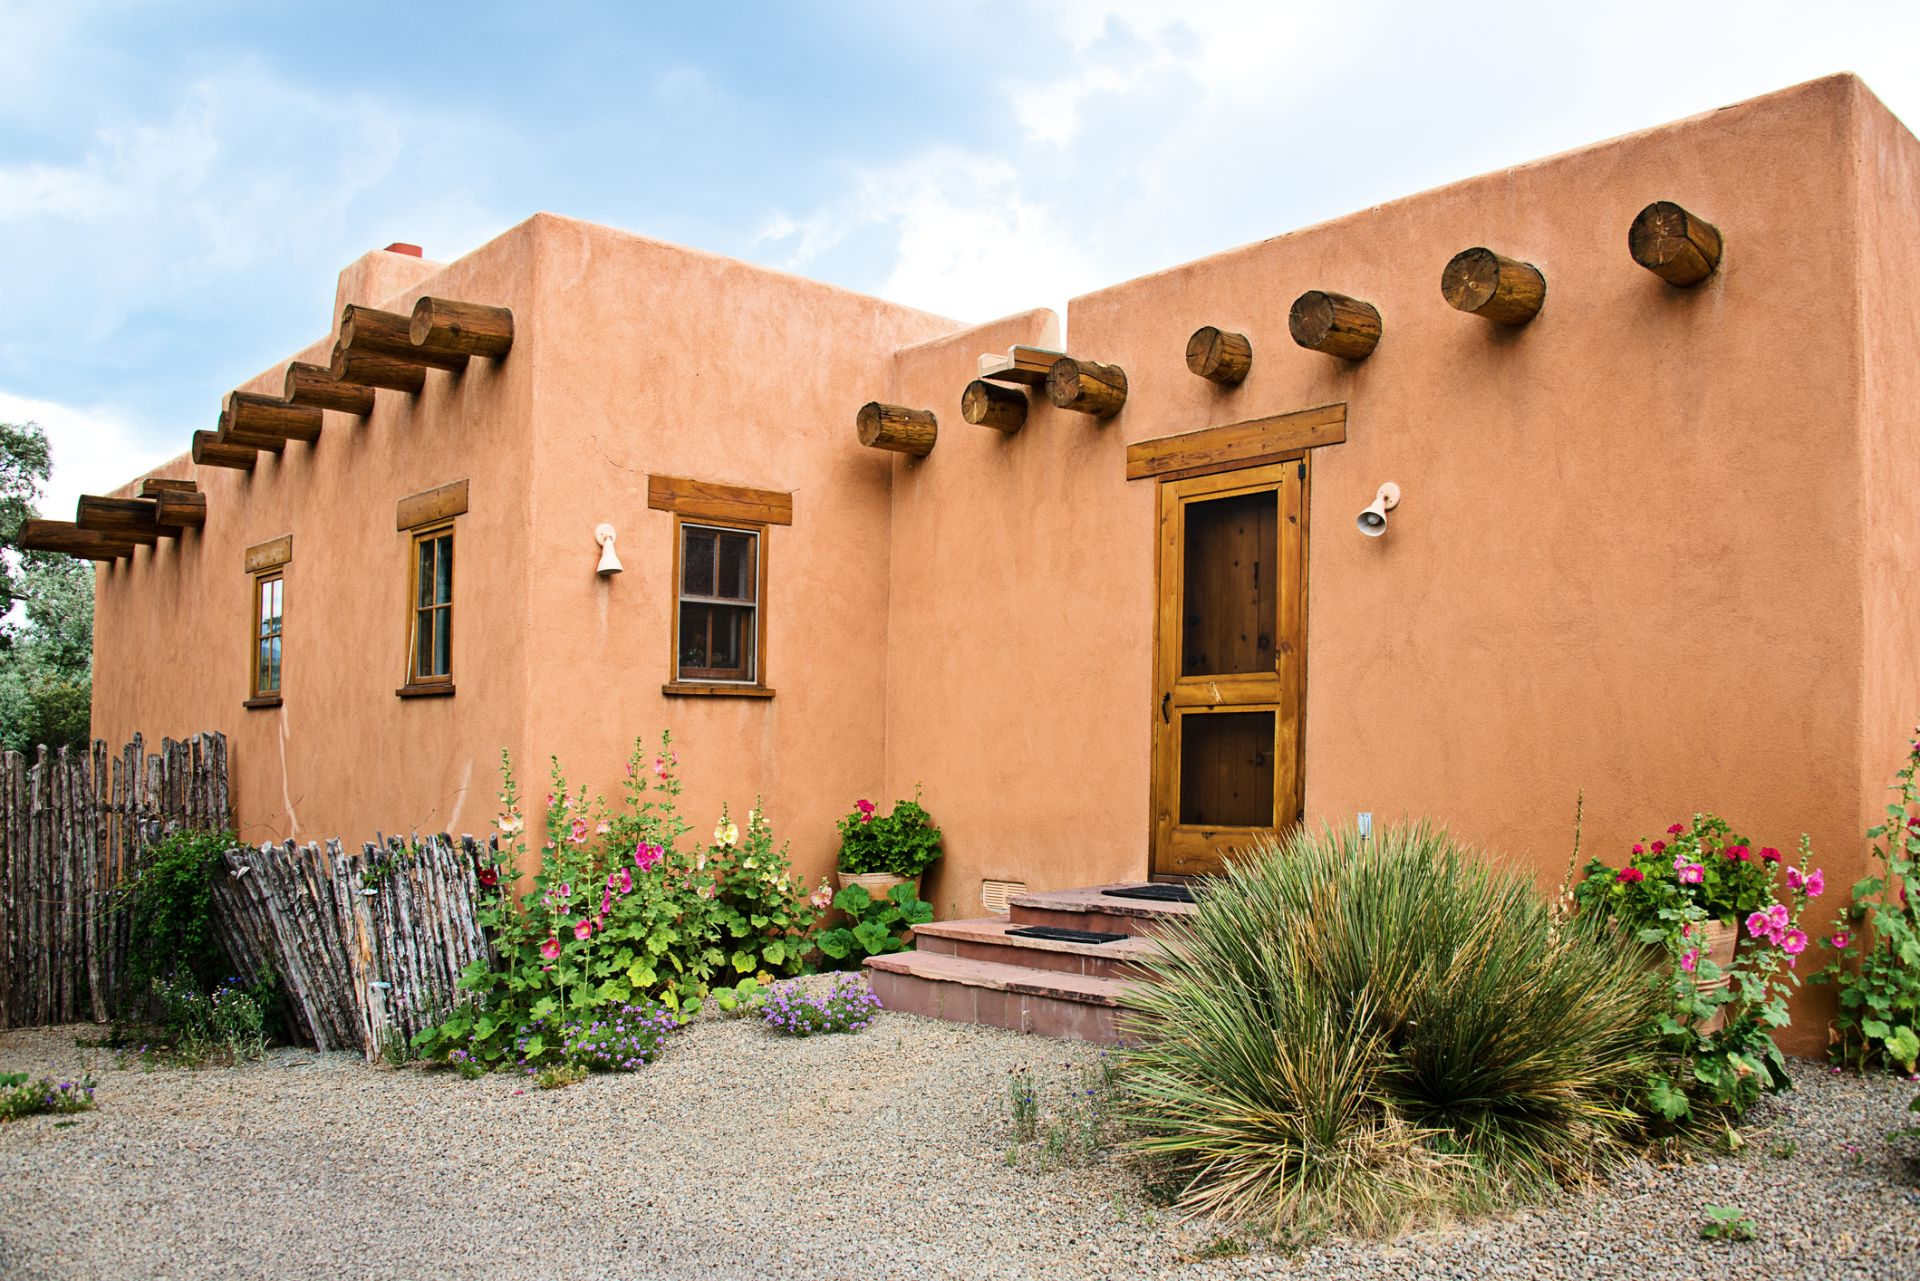 Sant Fe Pueblo-style homes are built with bricks of tightly compacted earth, clay and straw.